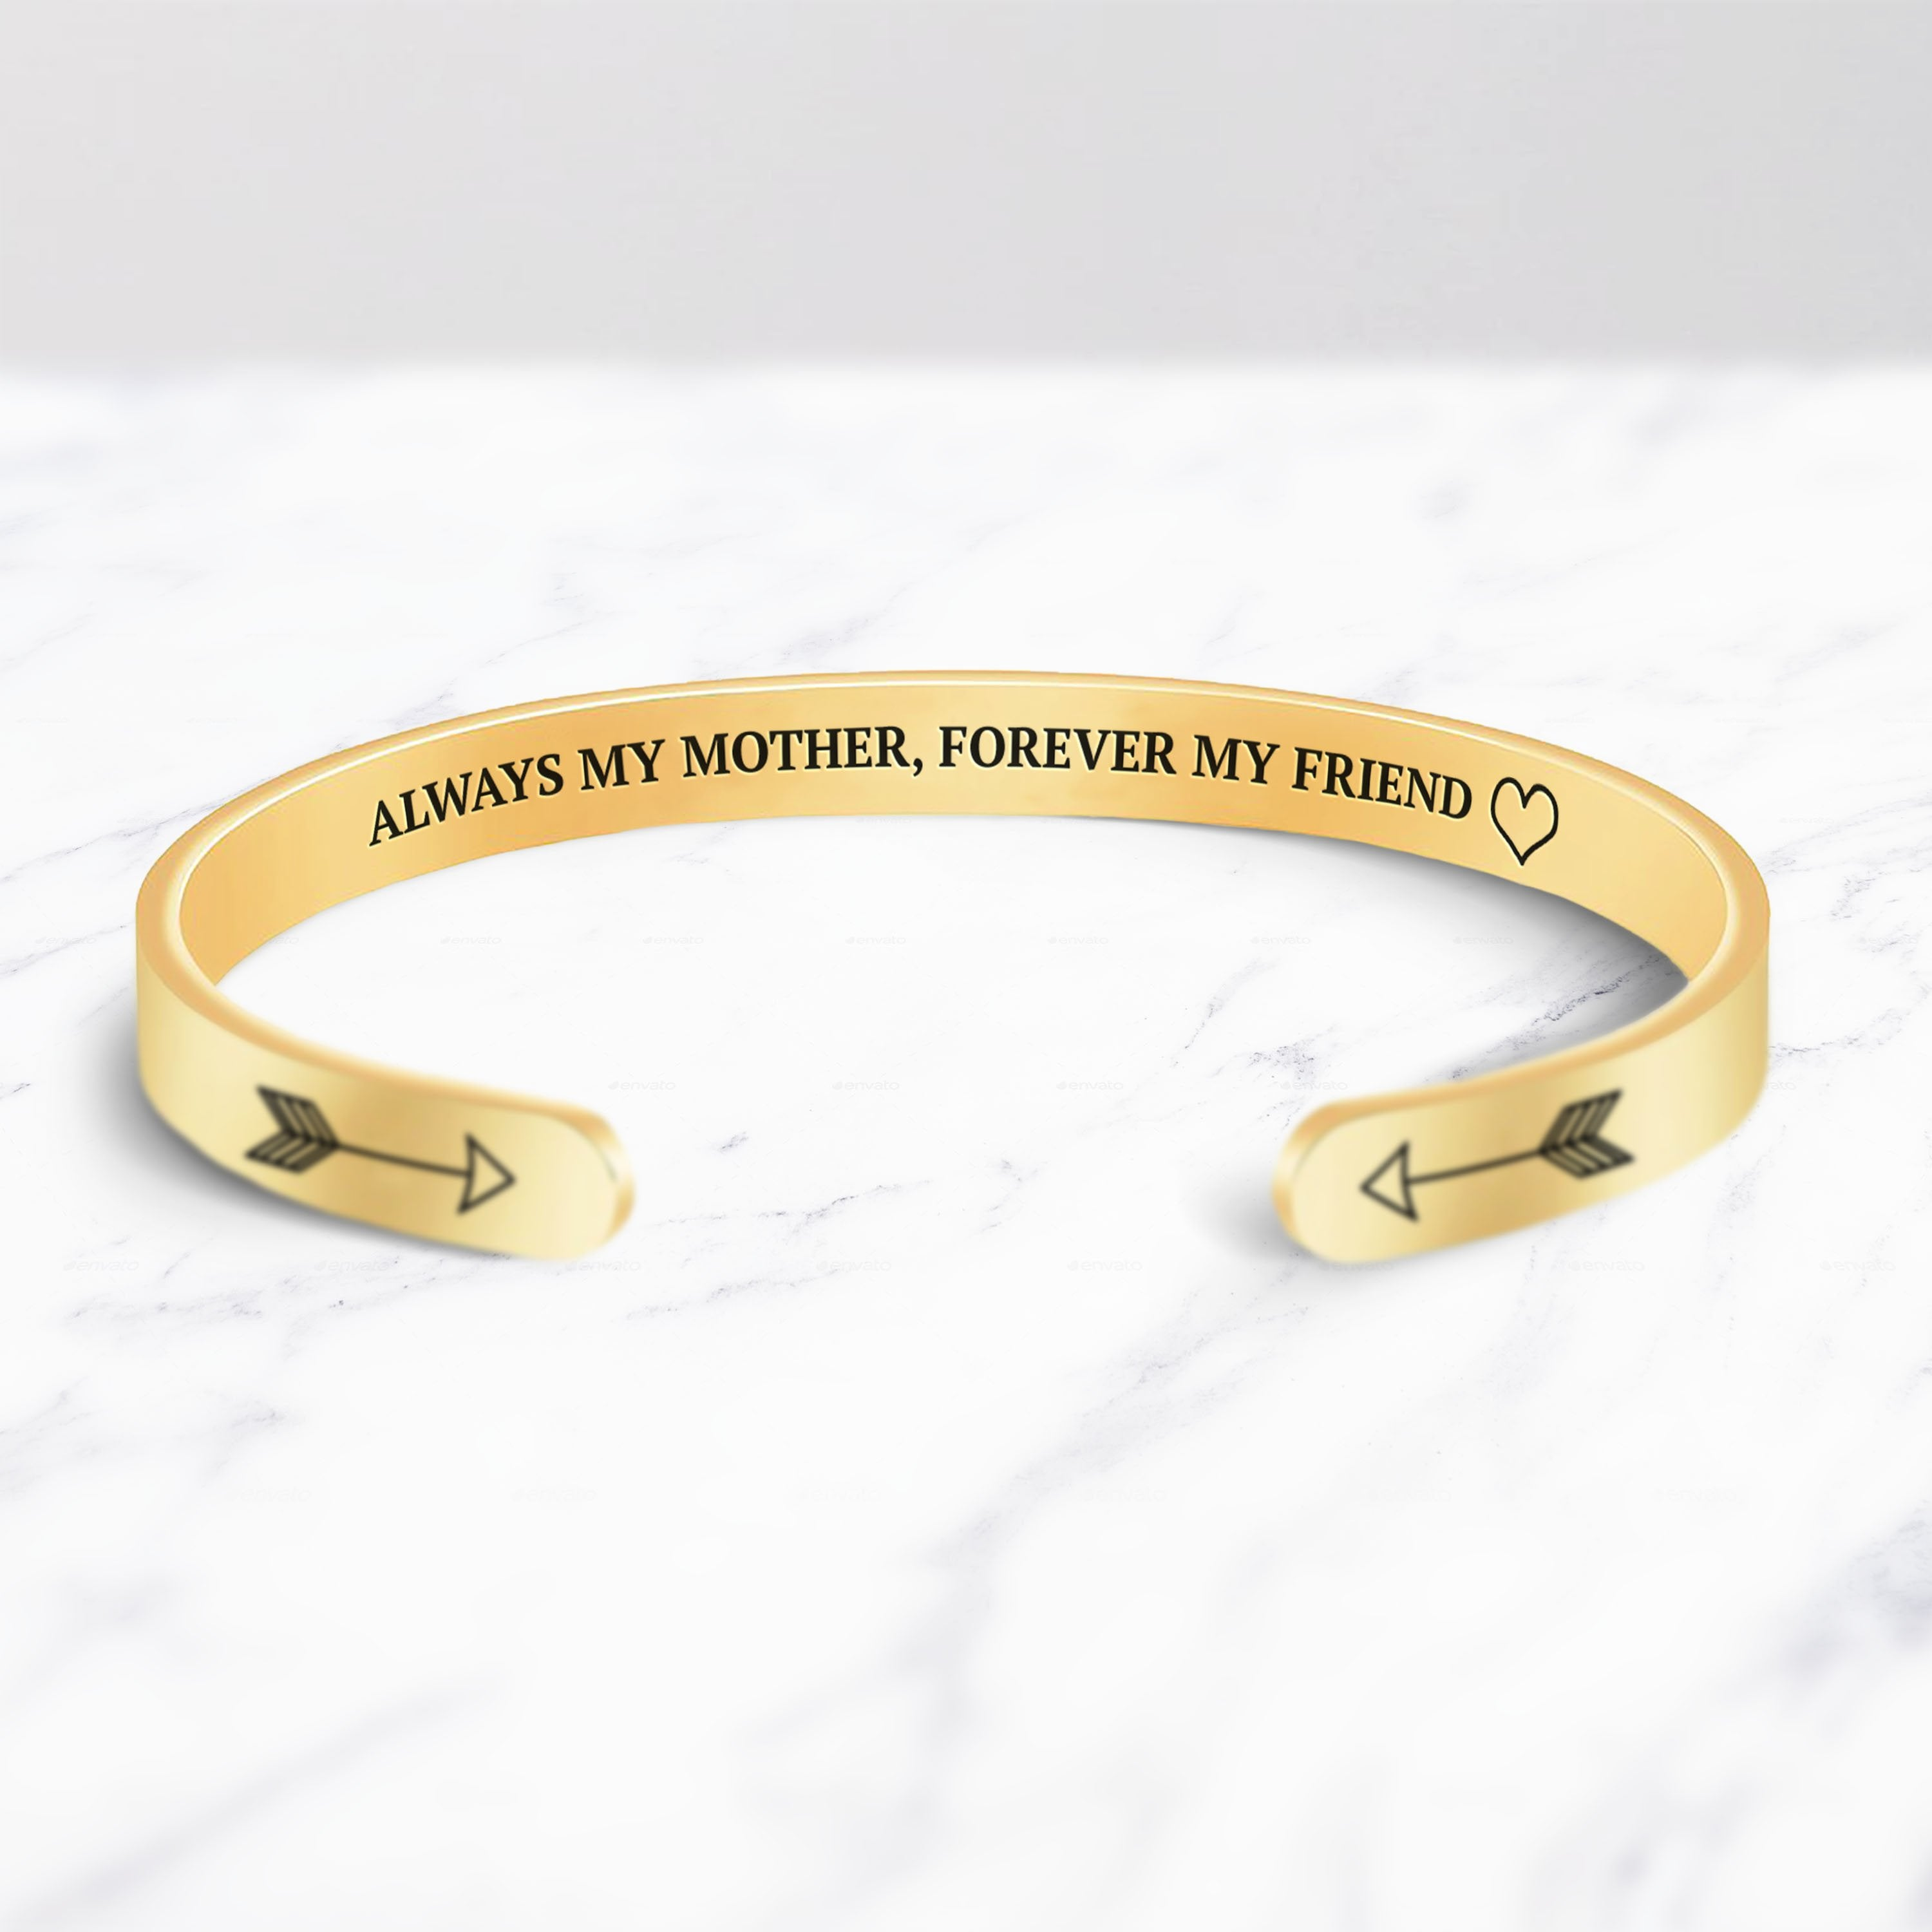 Always My Mother, Forever My Friend Cuff Bracelet bracelet with gold plating on a marble background